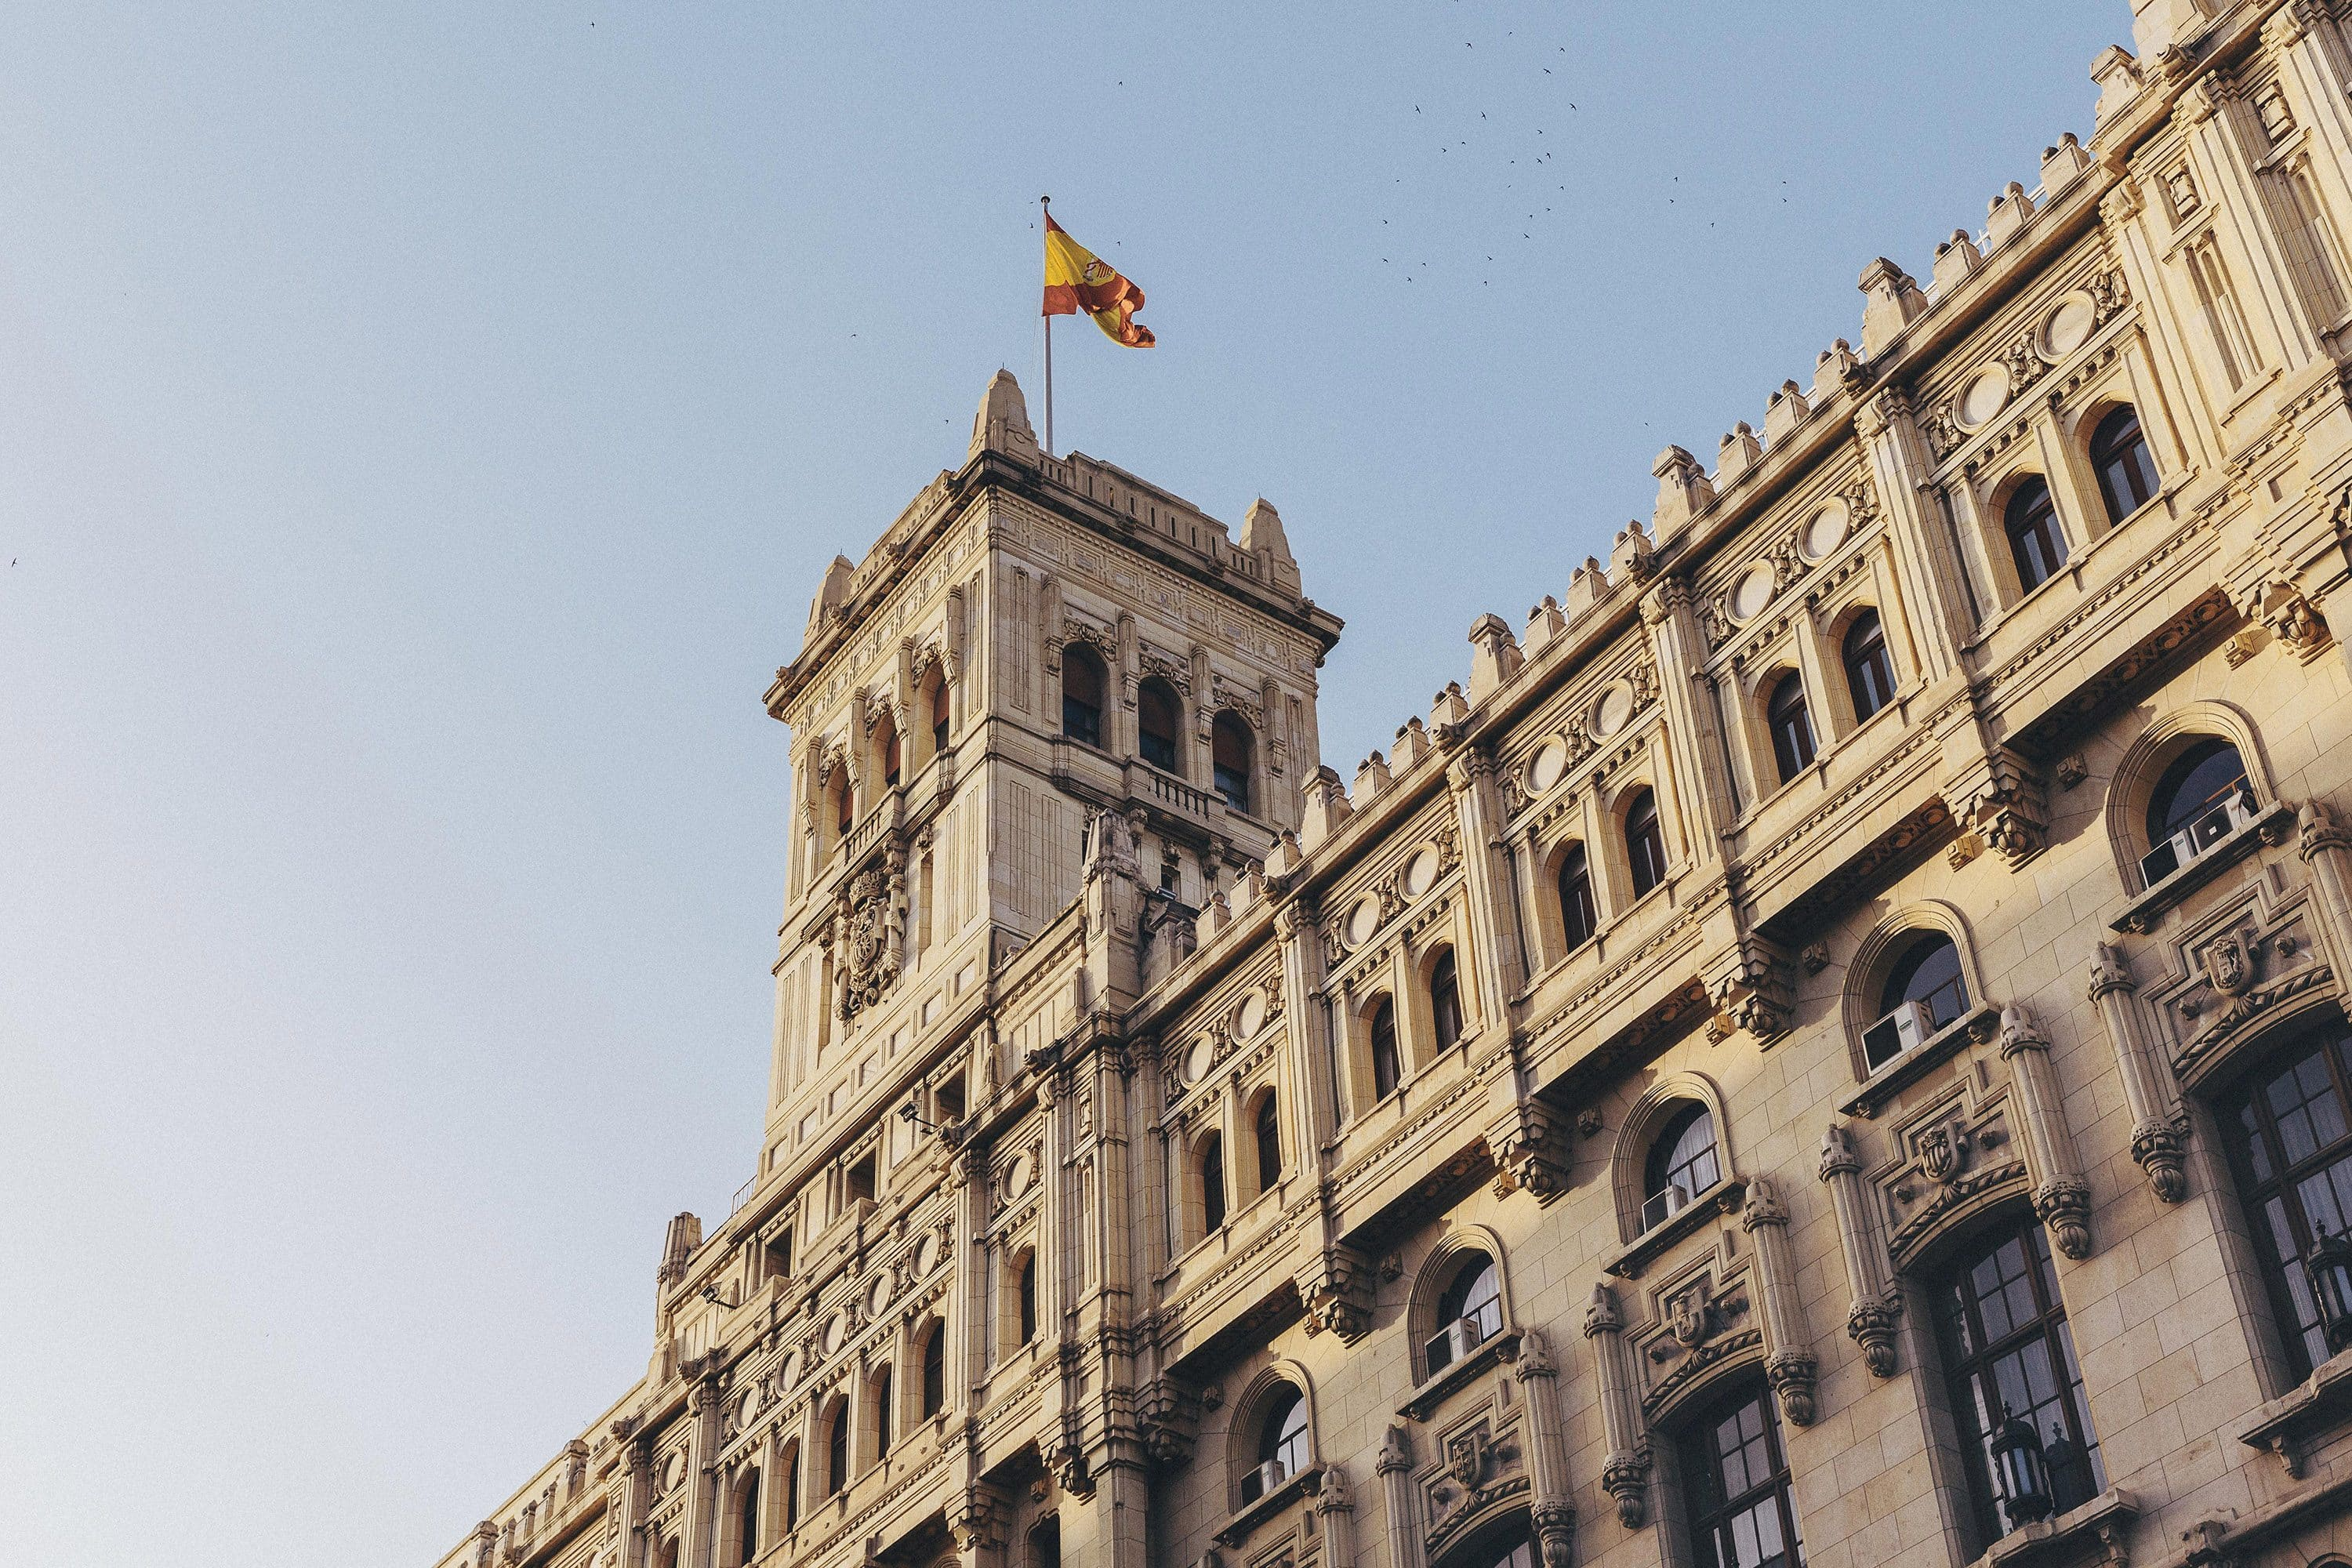 Palacio de Cibeles, Madrid with a Spanish flag blowing in the wind